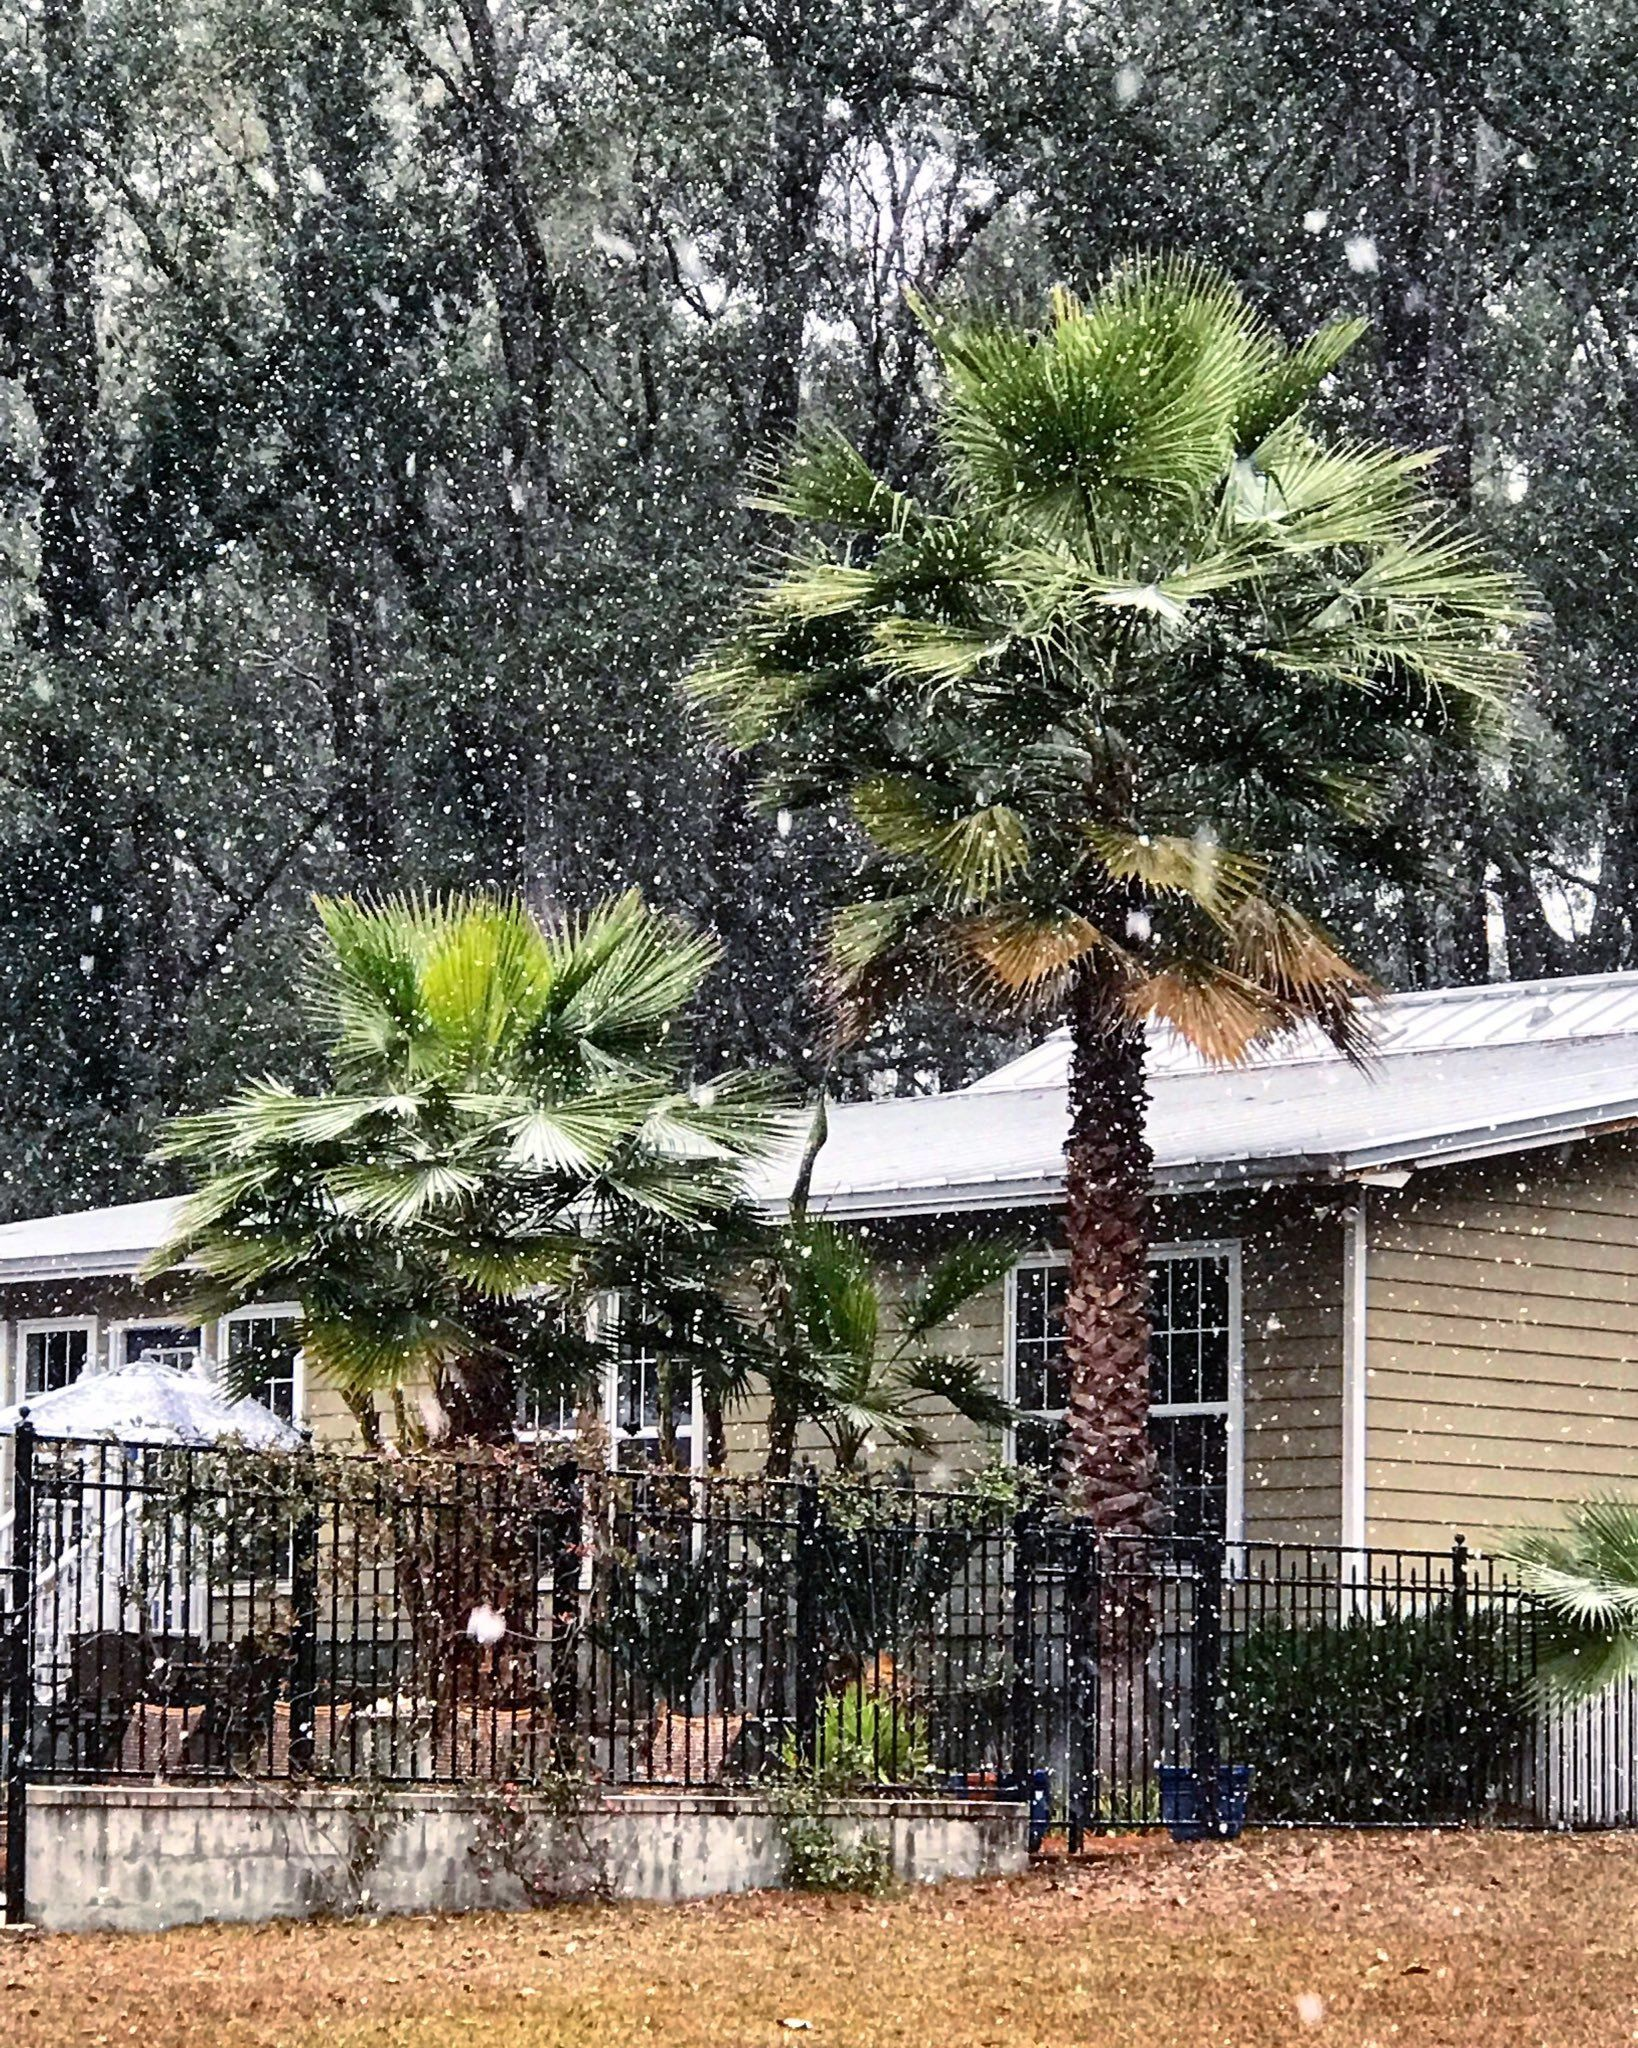 Florida capital sees first snowfall in nearly three decades